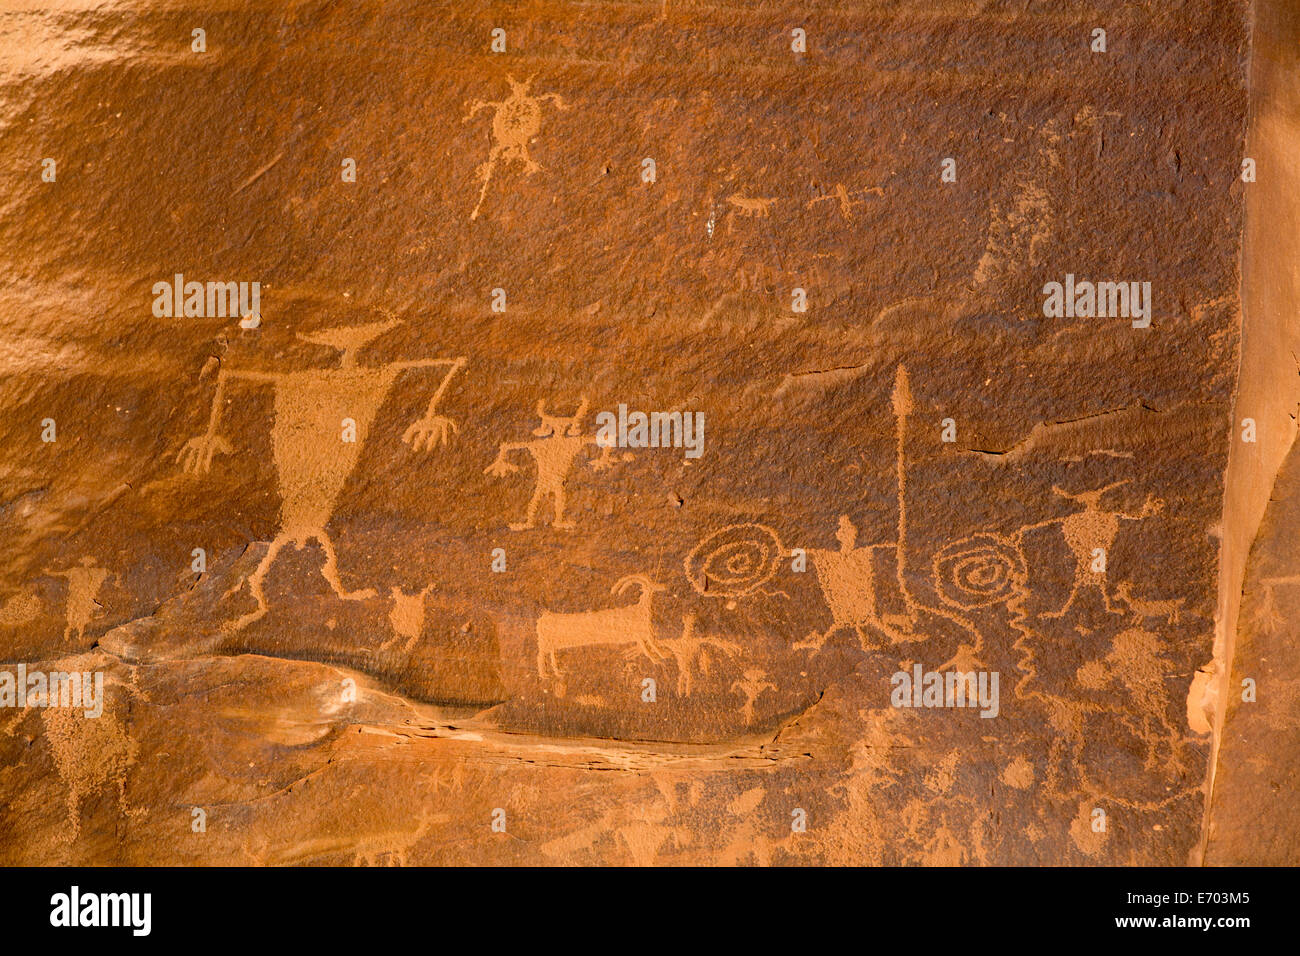 USA, Utah, Potash Road, near Moab, petroglyphs, ancestral puebloan, AD 900 to AD 1250 Stock Photo